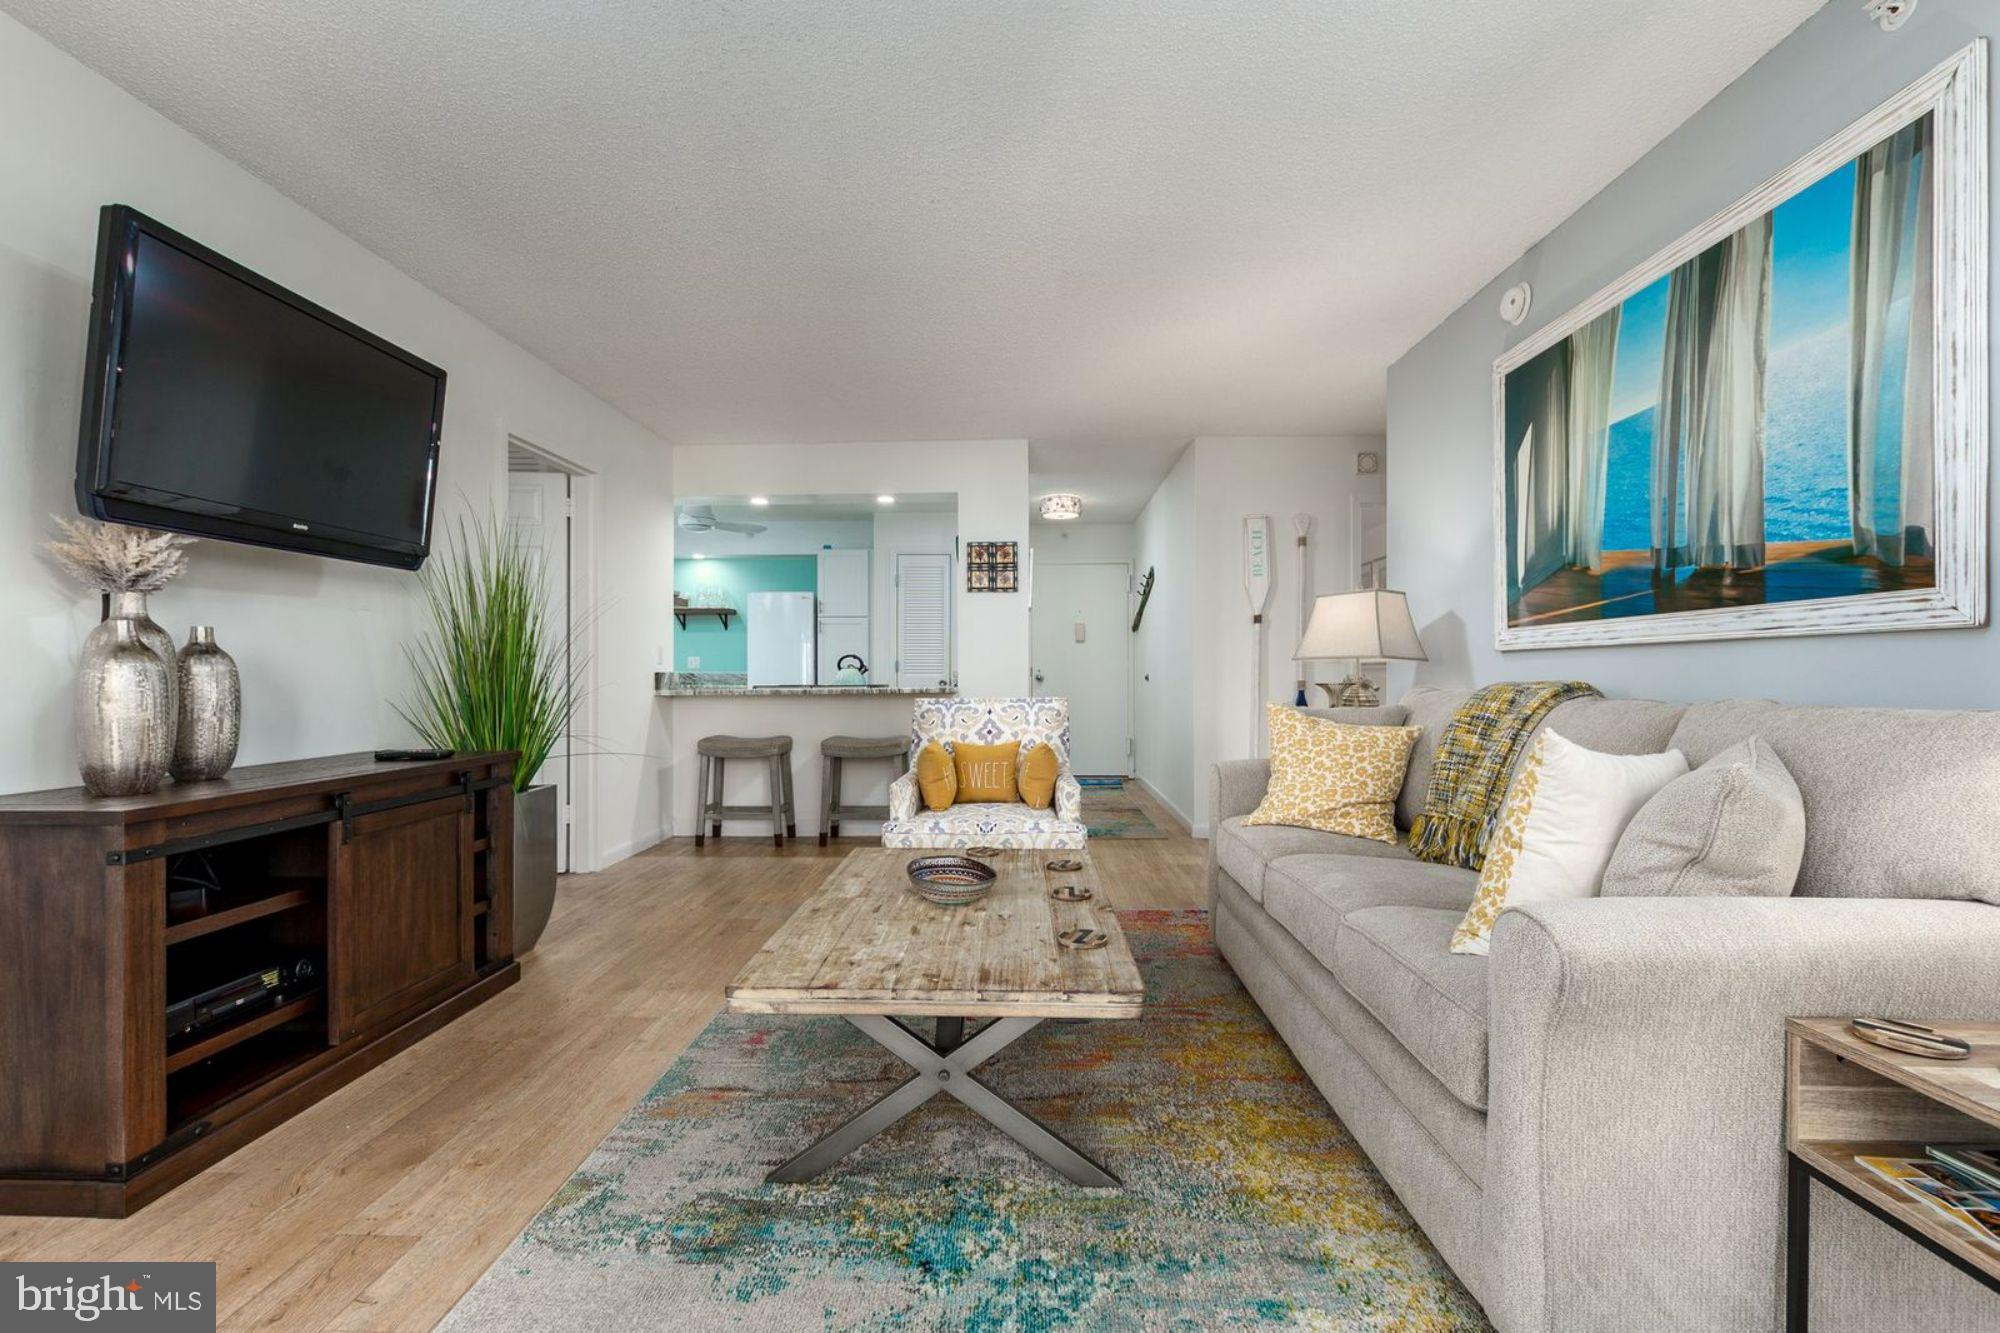 Beautiful Condo with access to beach... Own your private getaway in OC!! Spacious newly painted 2 BR